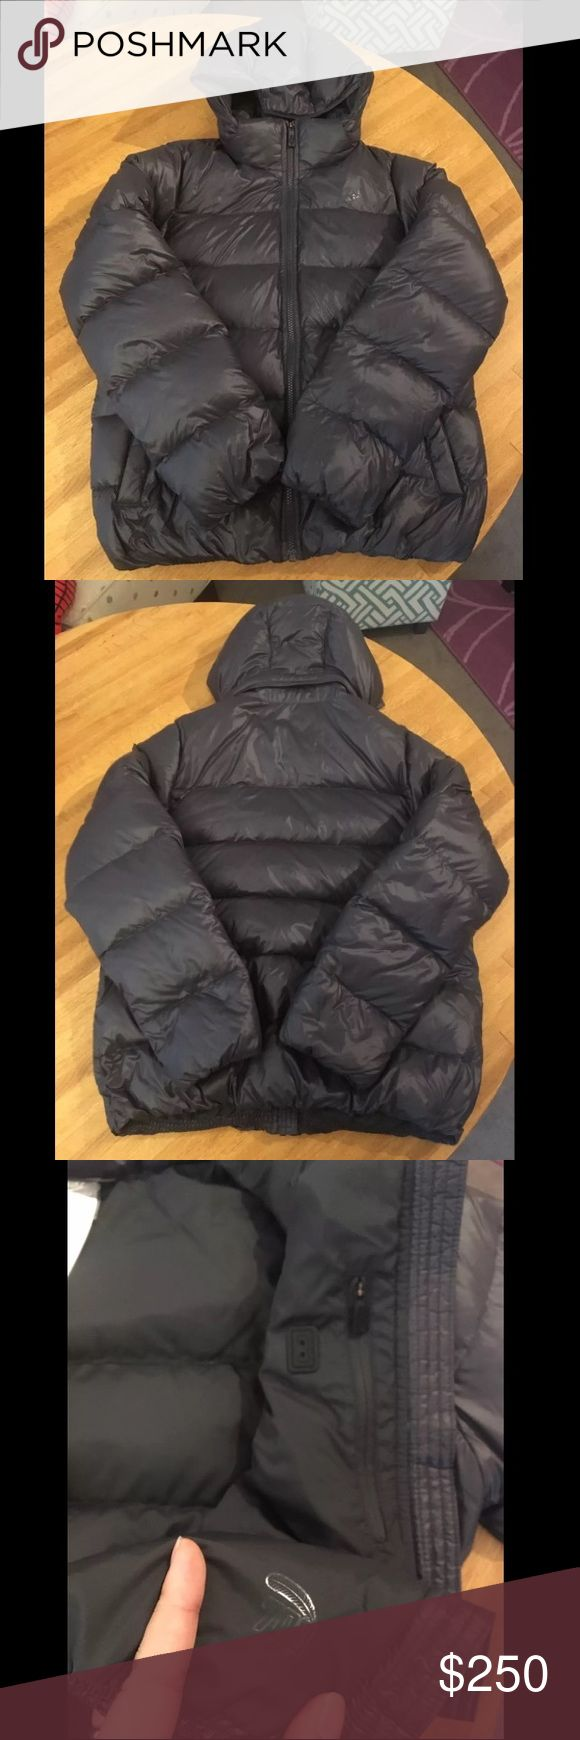 Rare* Nike down jacket Size- Woman's large, could also possible be a men's small to small medium Condition- NWOT (never worn, but tags were removed) Color- Dark grey/black   100% authentic   Released in 2012   VERY hard to find   Removable hood  Pocket inside jacket for a phone and headphones  Zipper pockets in front  700 grade down  Super light and breathable   Perfect putter layer or under layer  FIRM price due to having marked it down over $125! ❤️  Thanks for looking nice Nike Jackets…